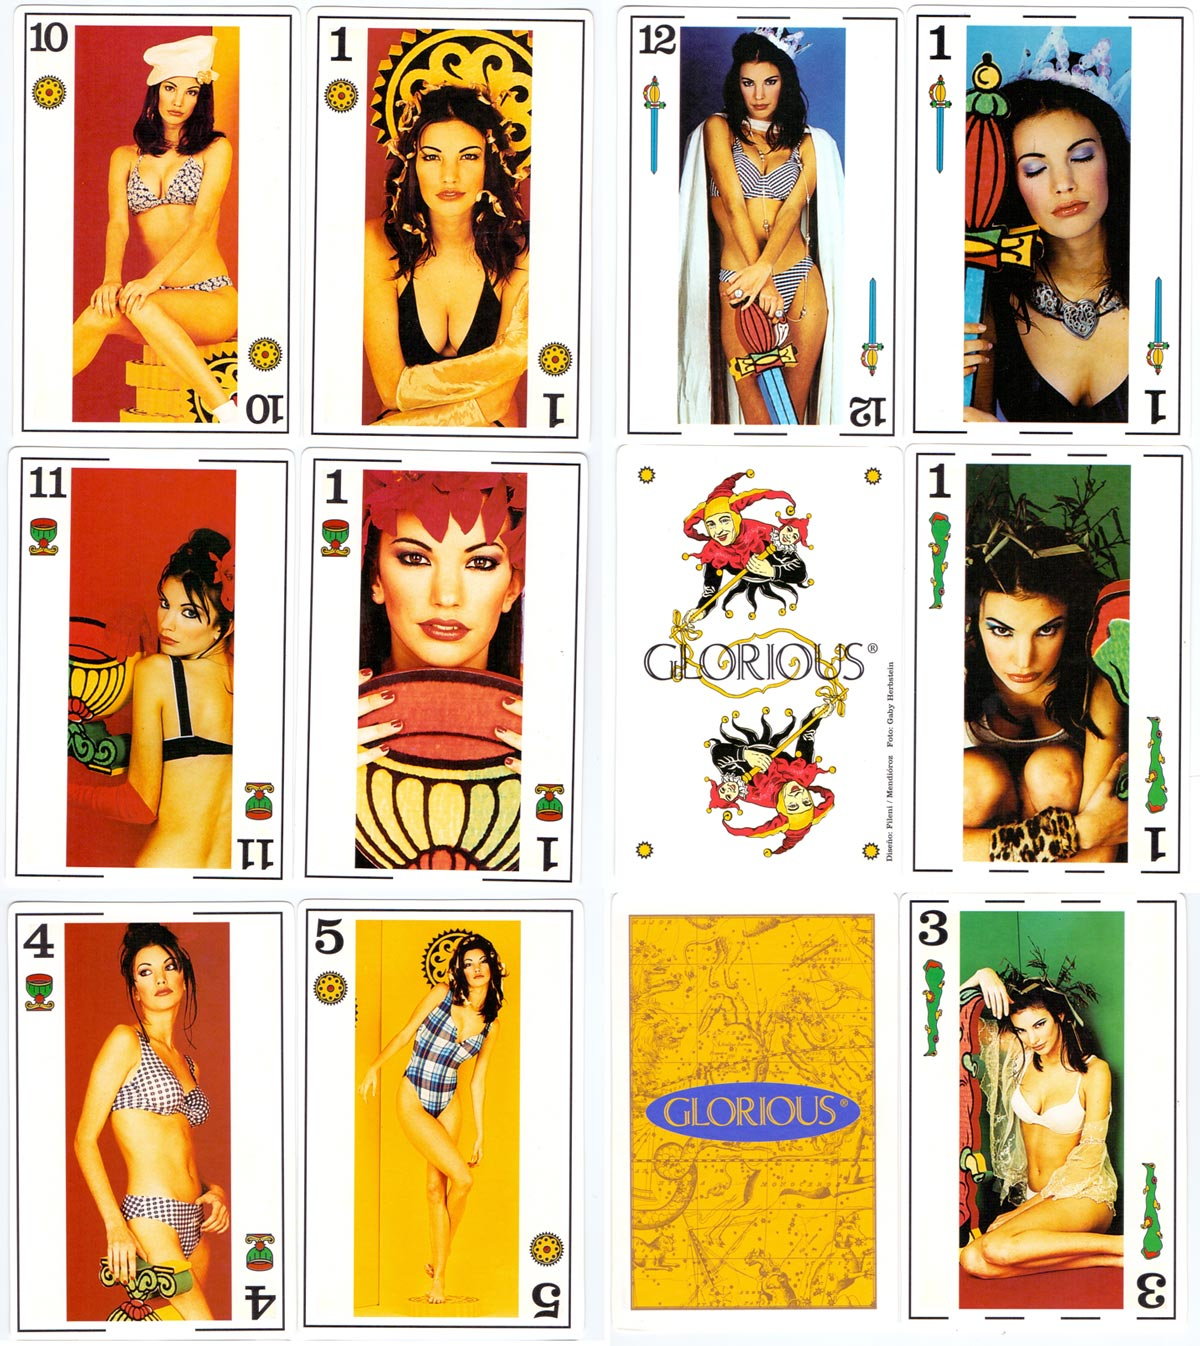 Spanish-suited playing cards featuring the 'Glorious' ladies swimwear collection for 1995, designed by Estudio Fileni/Mendióroz